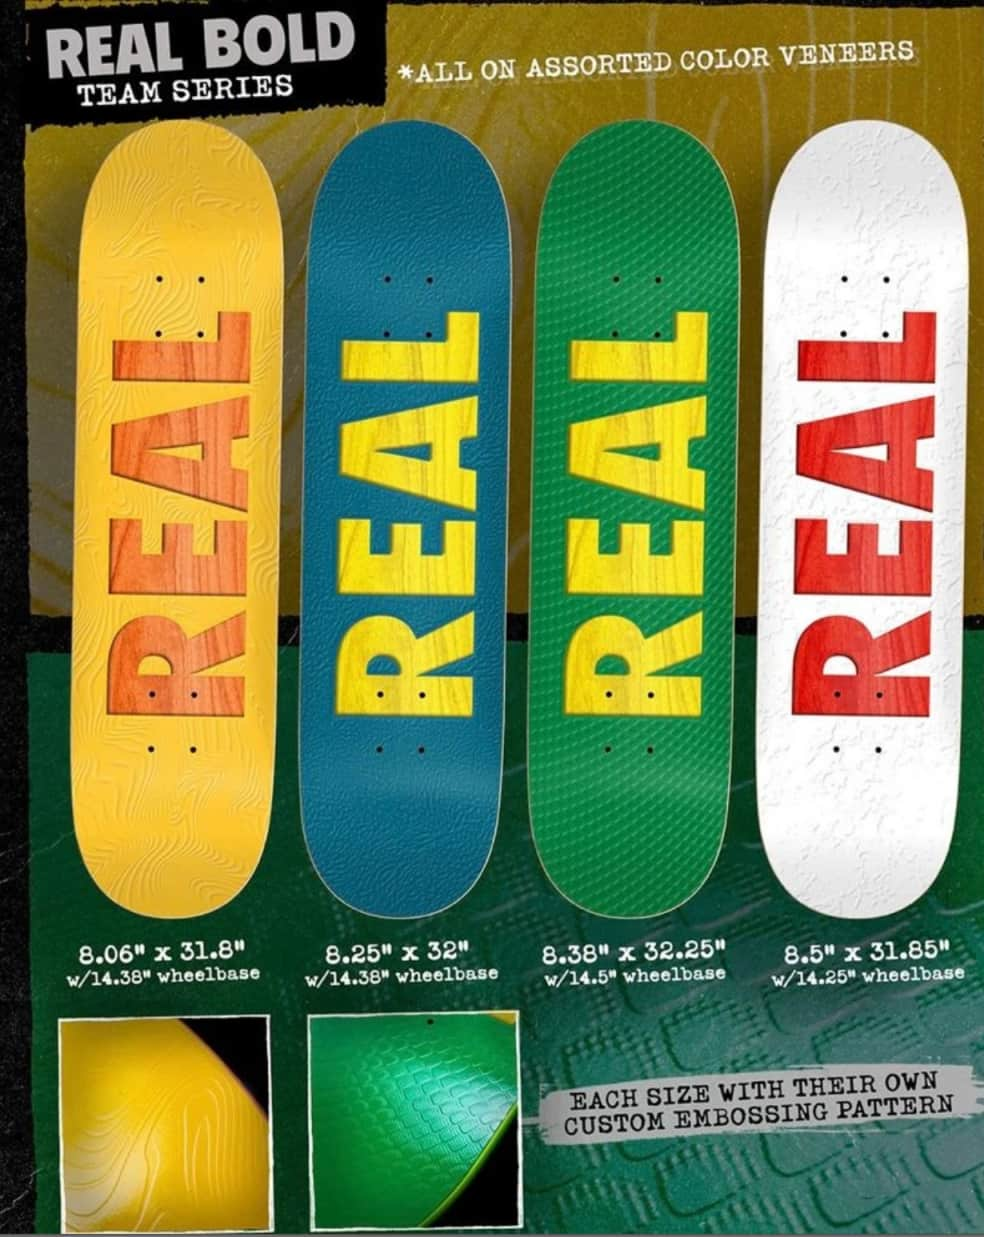 """Real Skateboards Bold Series 8.06"""" Deck   Deck by Real Skateboards 2"""